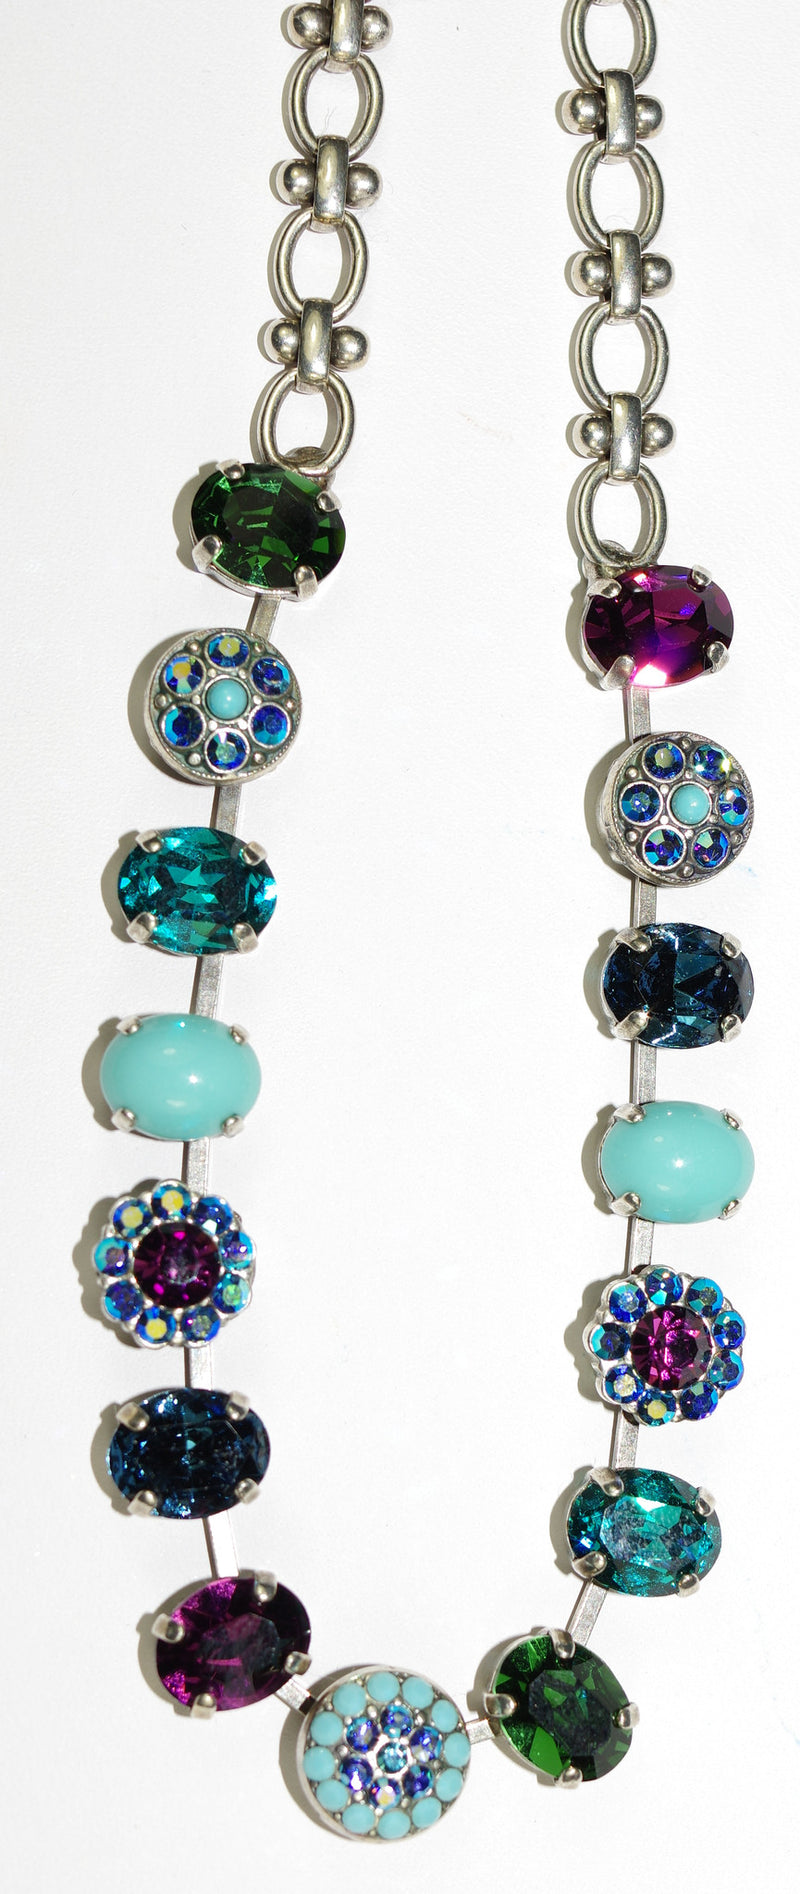 "MARIANA NECKLACE INSPIRE: blue, purple, turq, green stones in silver setting, 20"" adjustable chain"